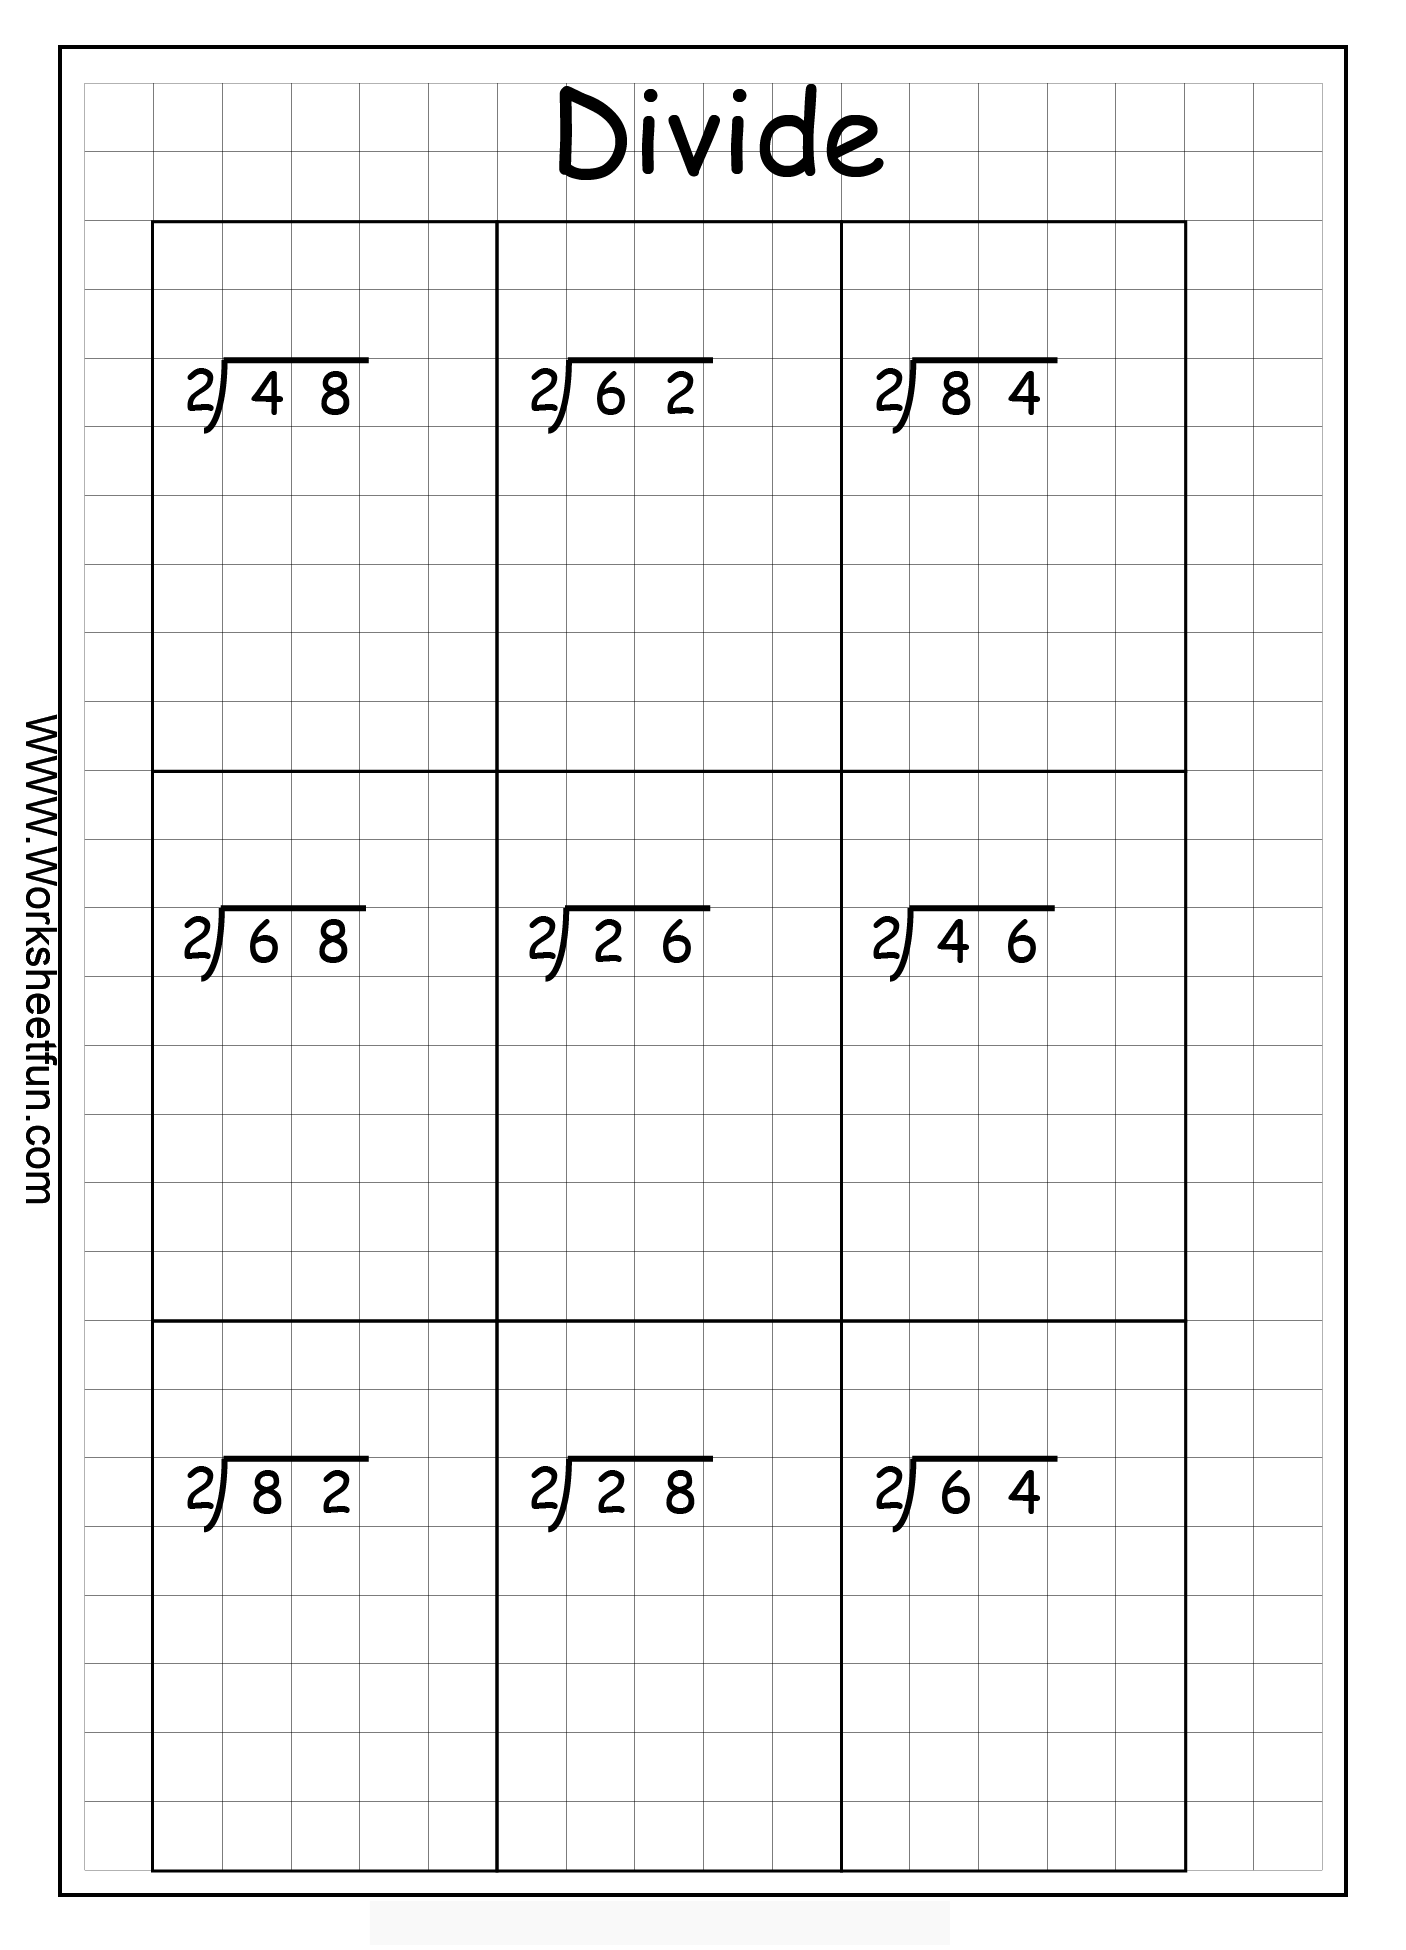 Long Division \u2013 2 Digits By 1 Digit \u2013 No Remainder 10 Worksheets Basic Perimeter Worksheets Long Division \u2013 2 Digits By 1 Digit \u2013 No Remainder 10 Worksheets